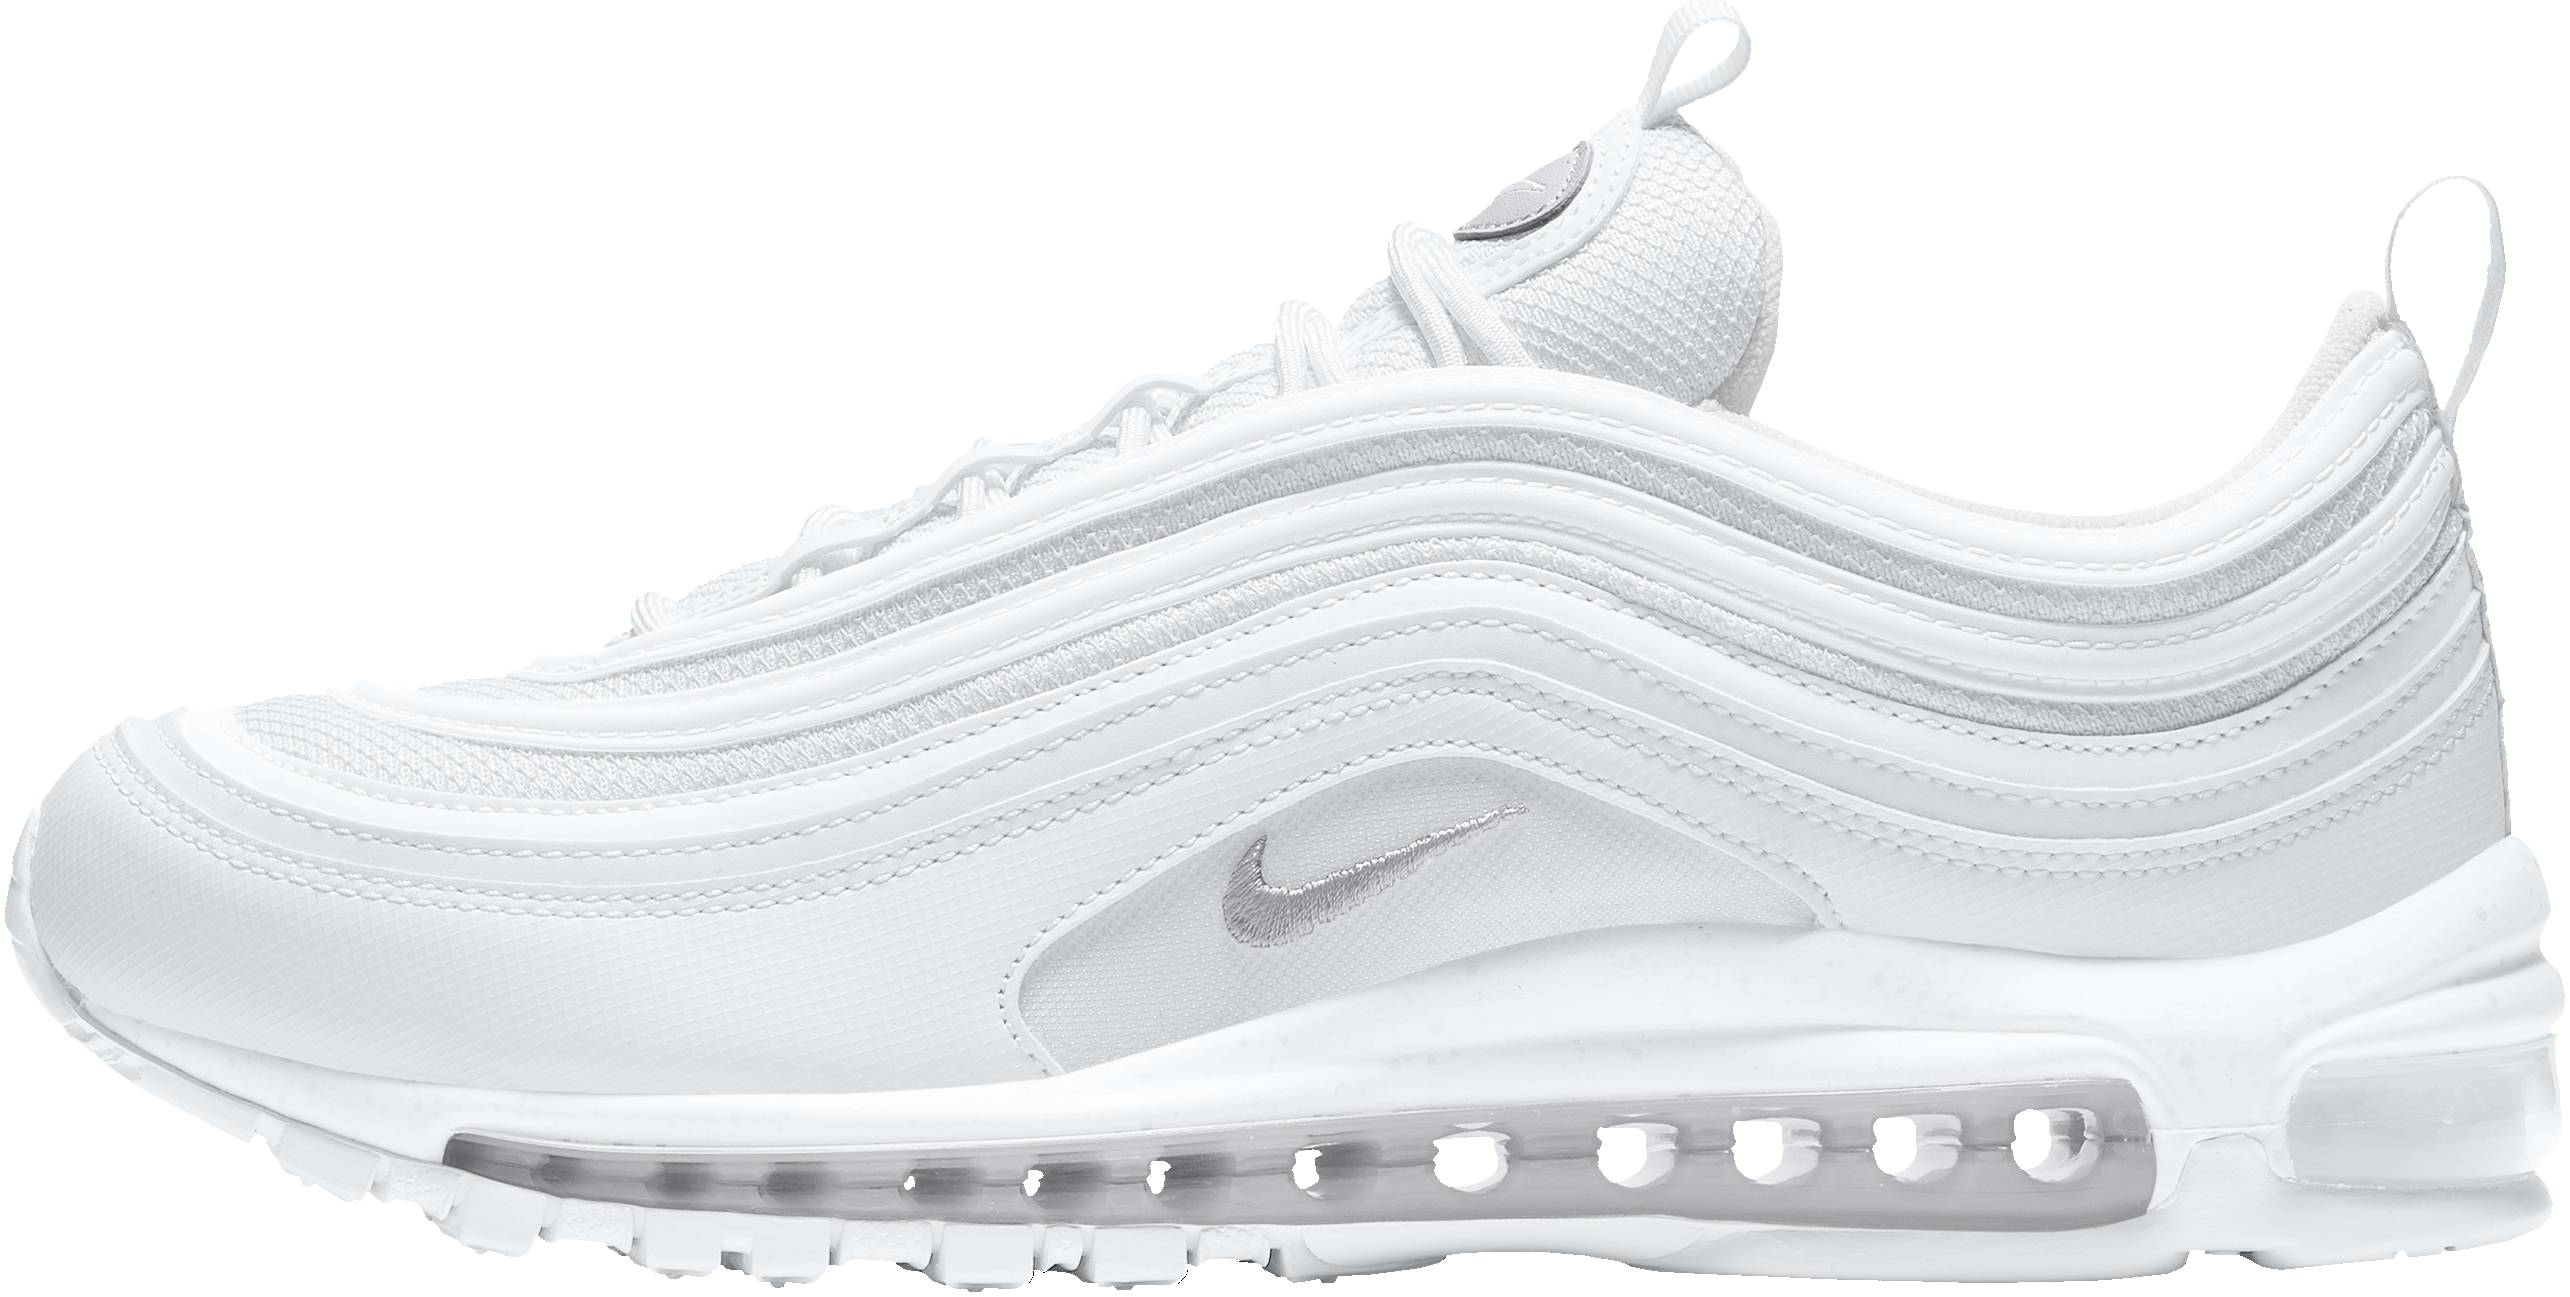 de traicionar búnker  Nike Air Max 97 sneakers in 20+ colors (only $130) | RunRepeat